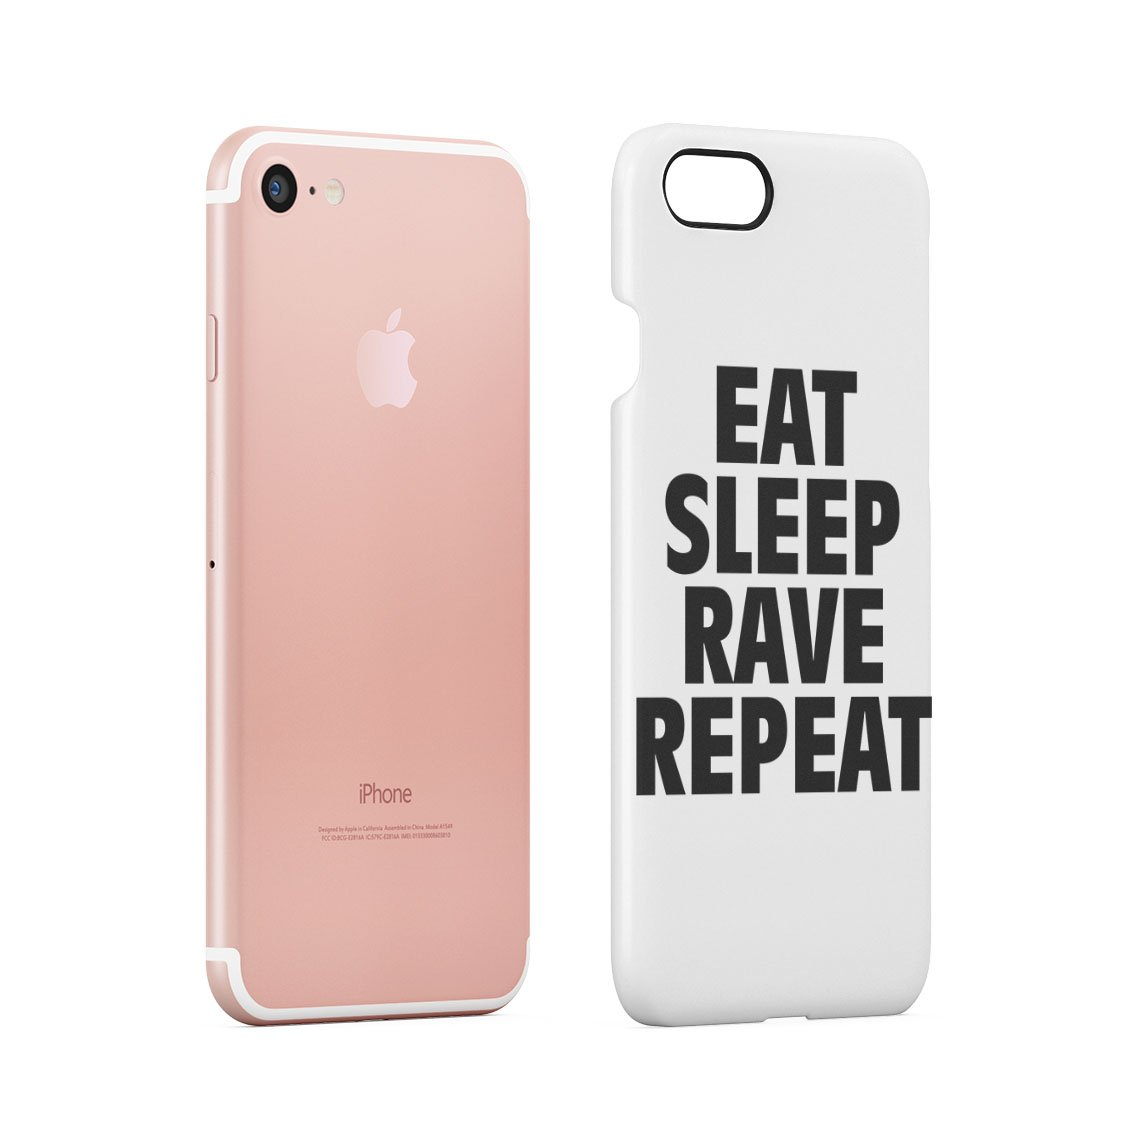 Eat Sleep Rave Repeat Funny Quote Hard Thin Plastic Phone Case Cover For iPhone  7 & iPhone 8: Amazon.es: Electrónica